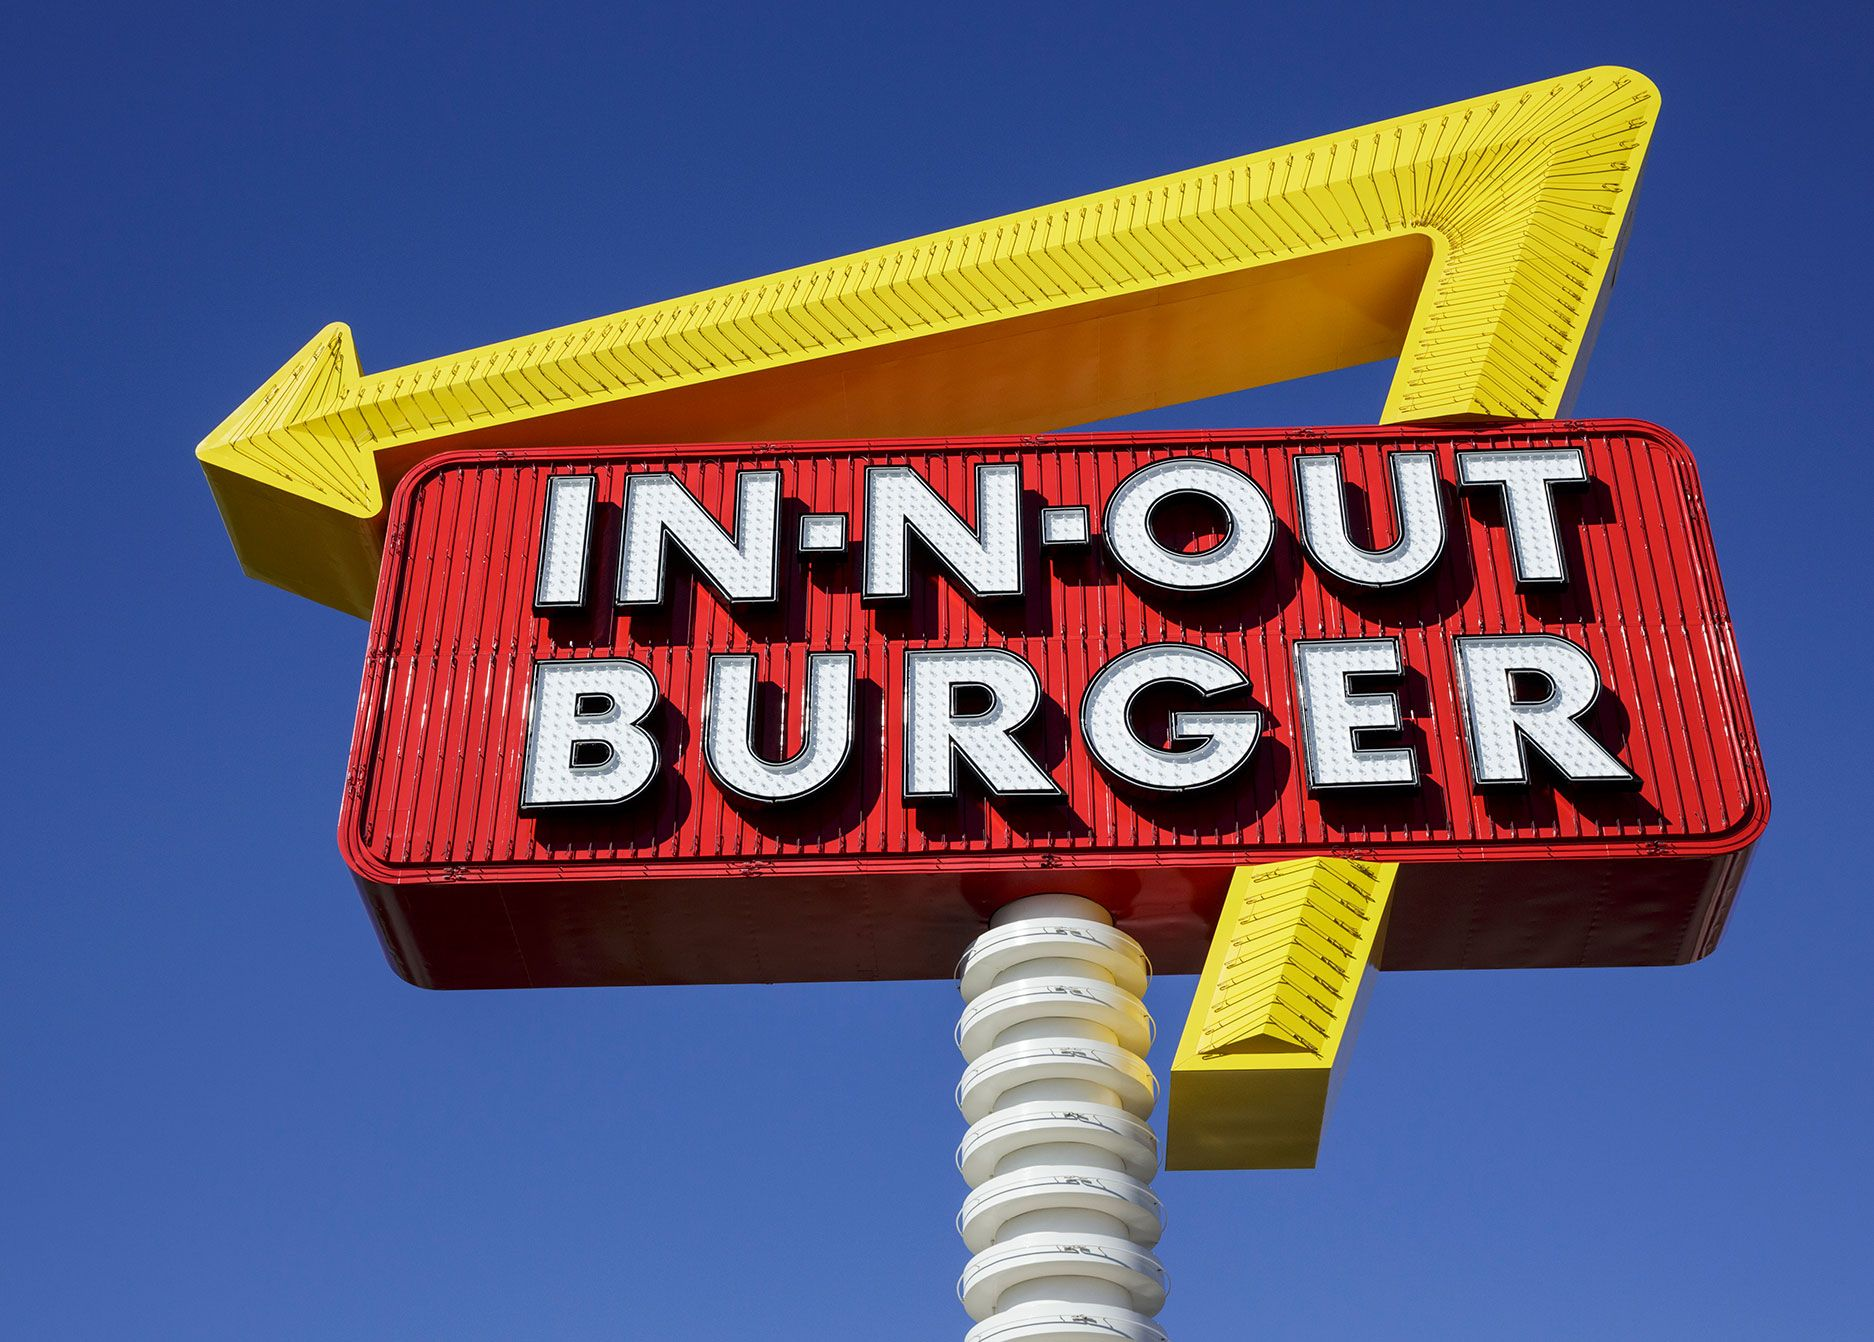 fast food restaurant In-N-Out Burger is located in five states.